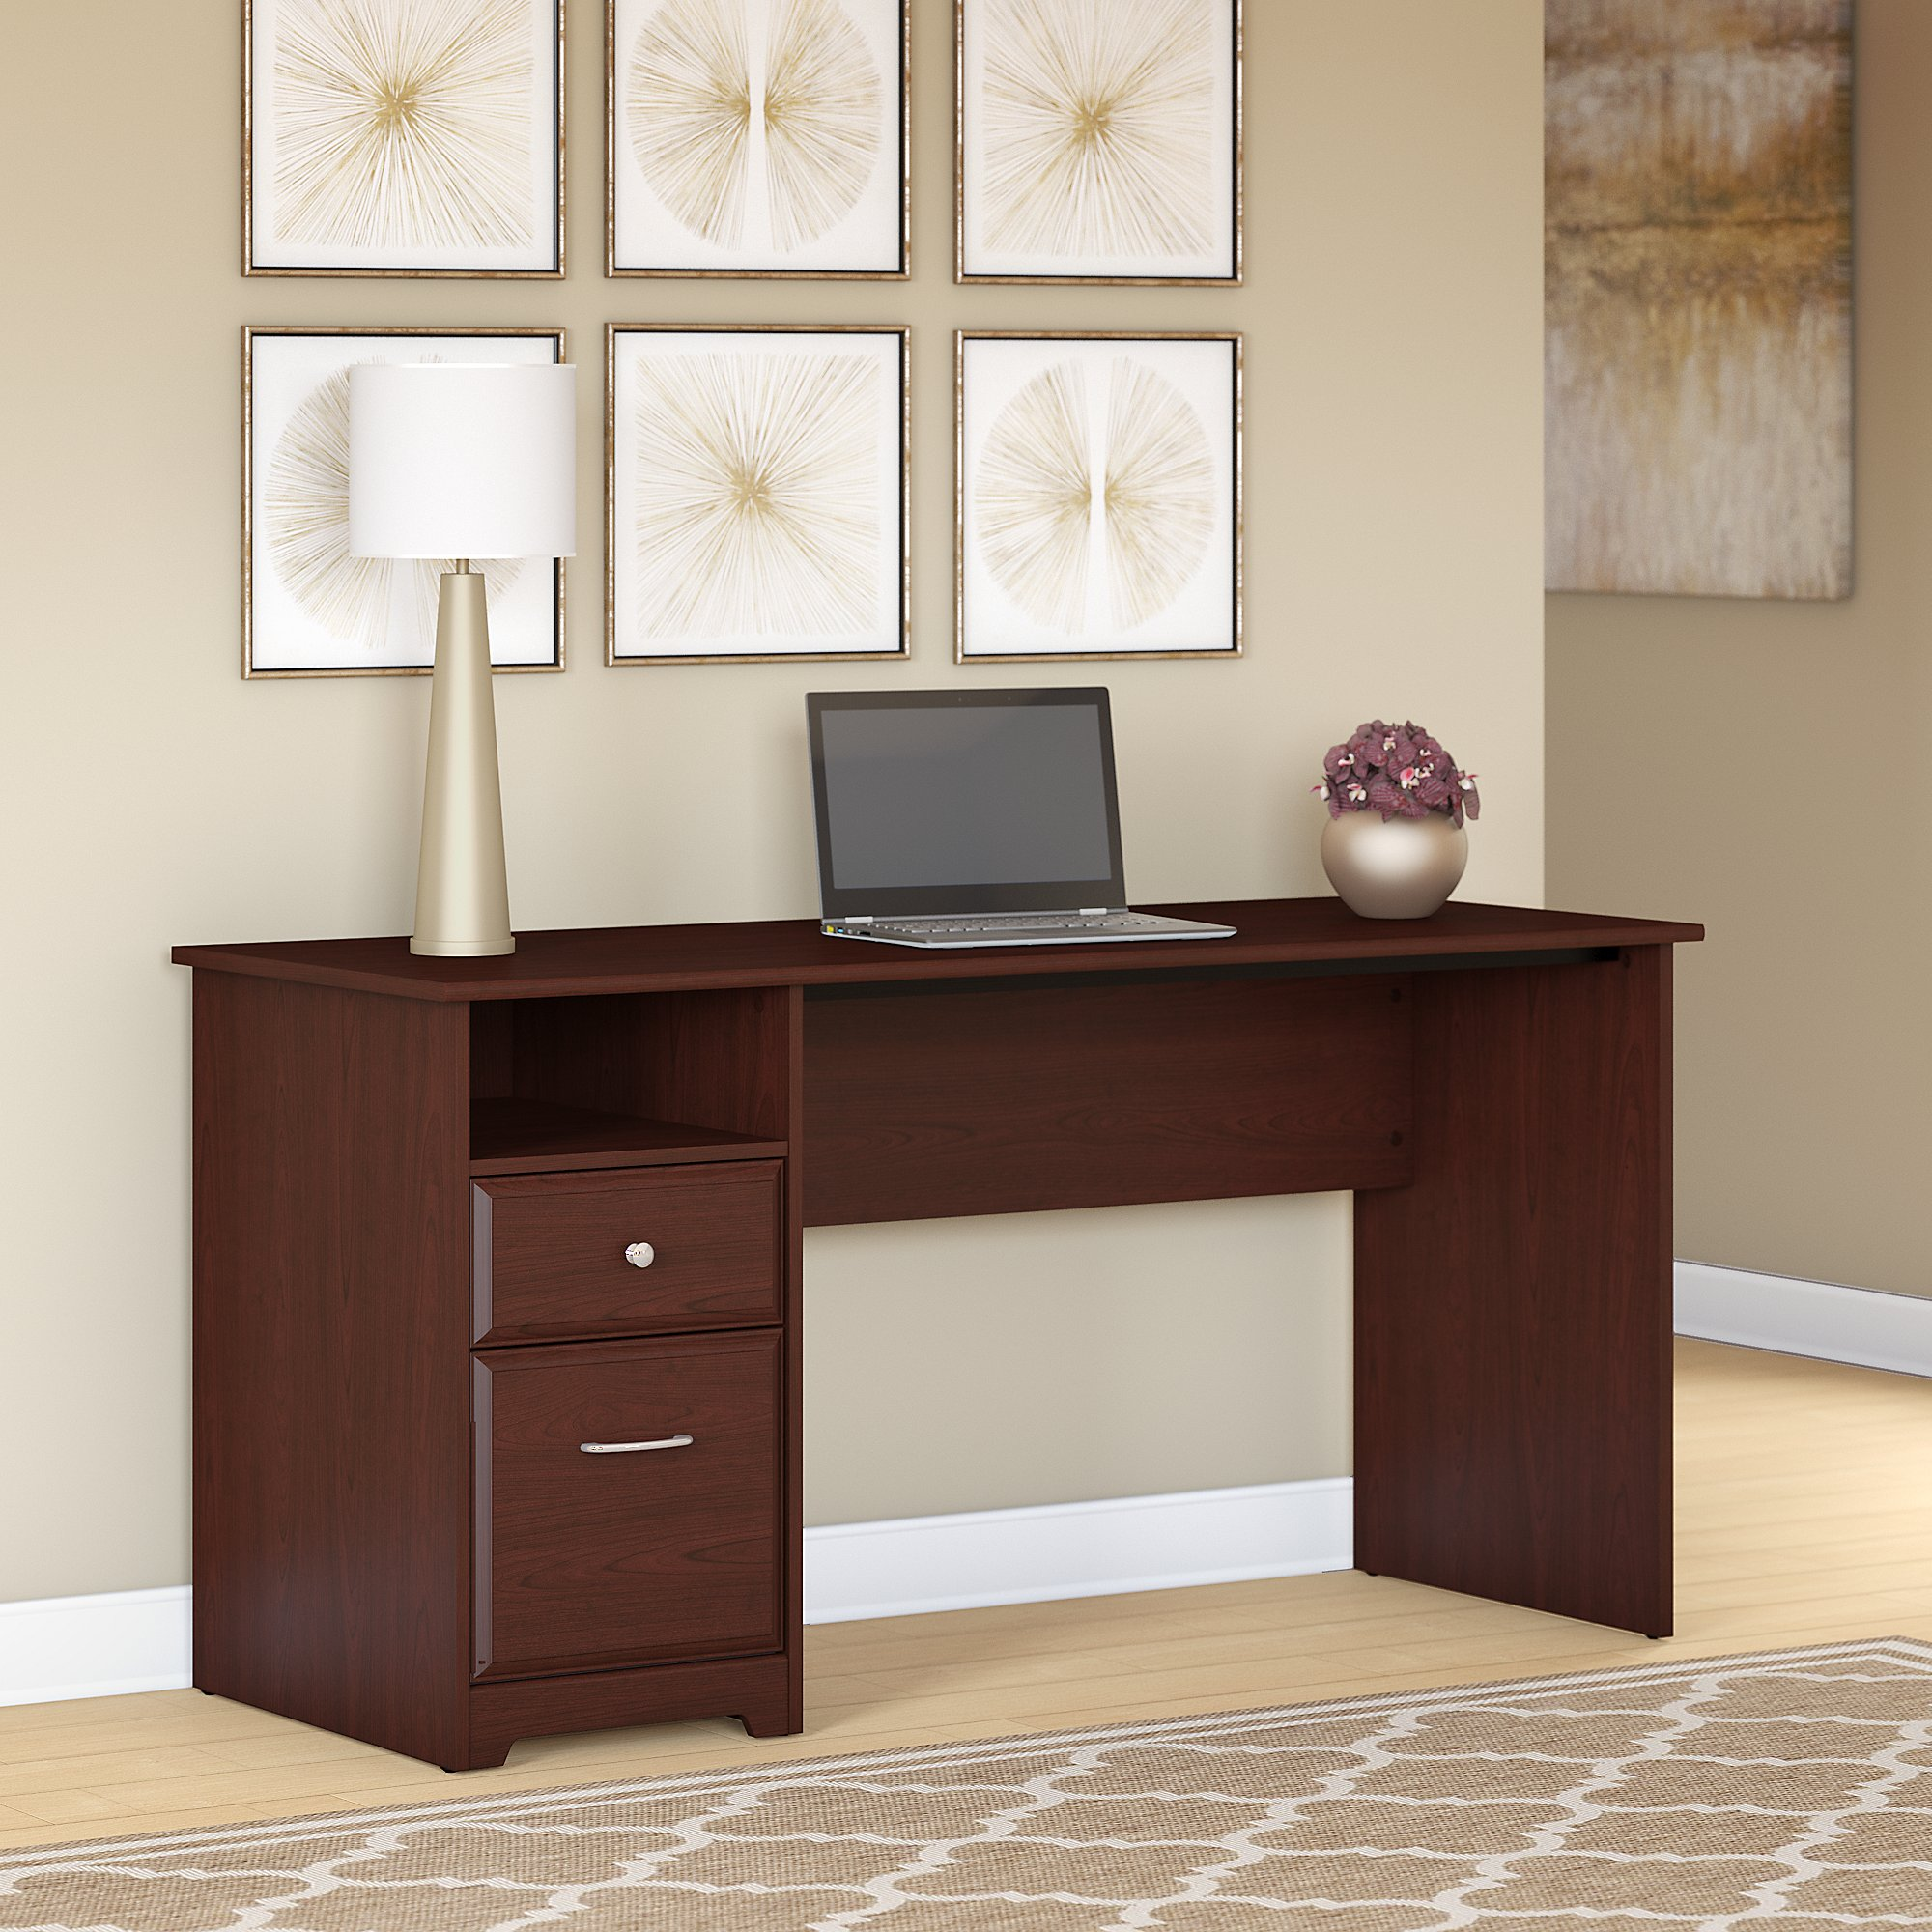 Bush Furniture Cabot 60W Computer Desk with Drawers in Harvest Cherry